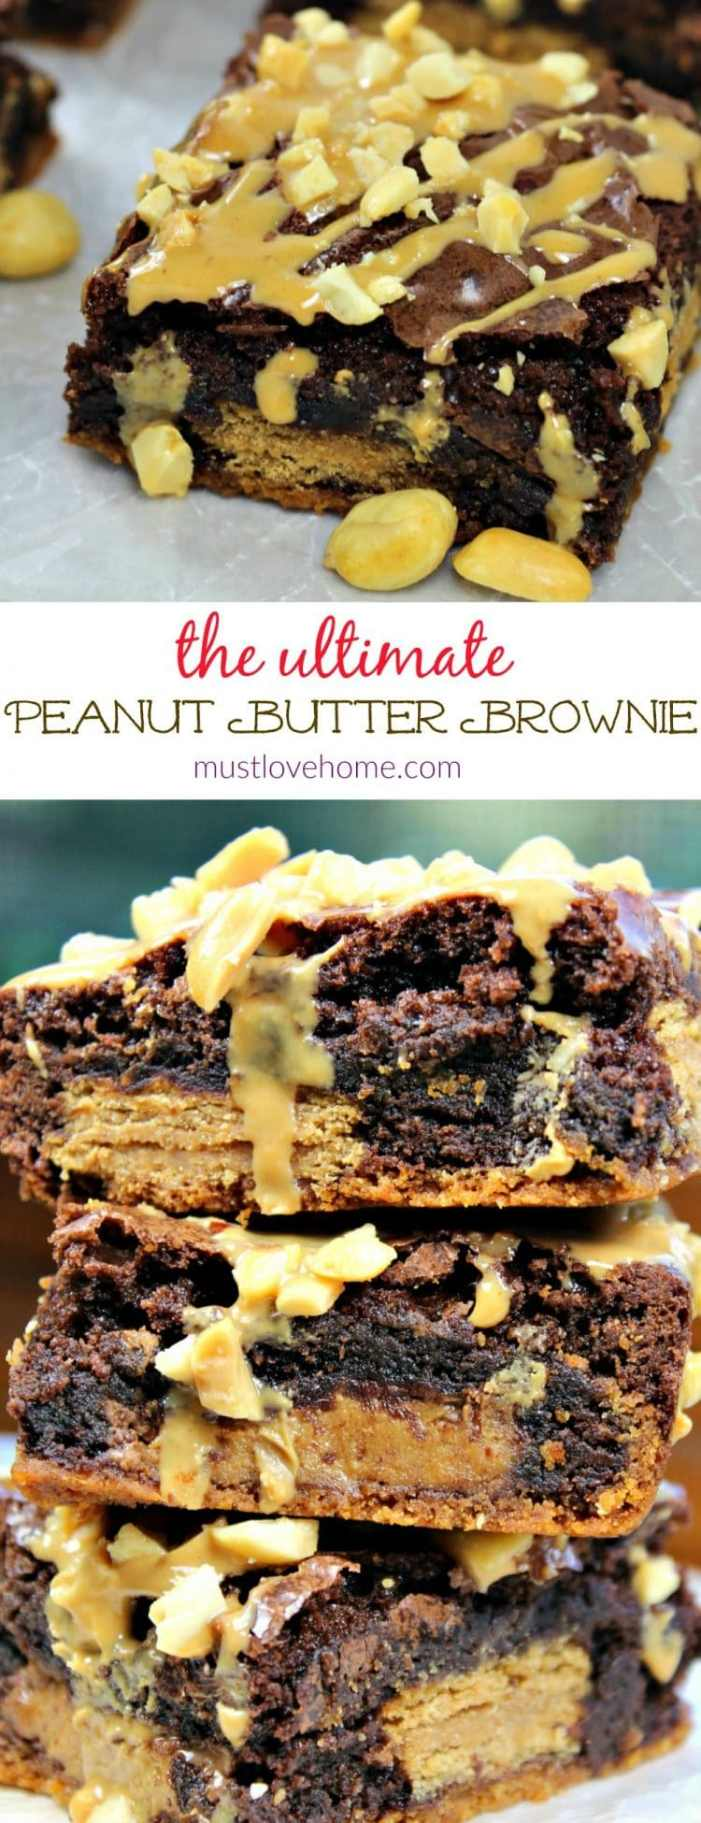 Ultimate Peanut Butter Brownies are peanut butter cookie dough, sandwich cookies, peanut butter cups and a fudge brownie batter that make for an amazingly delicious treat!